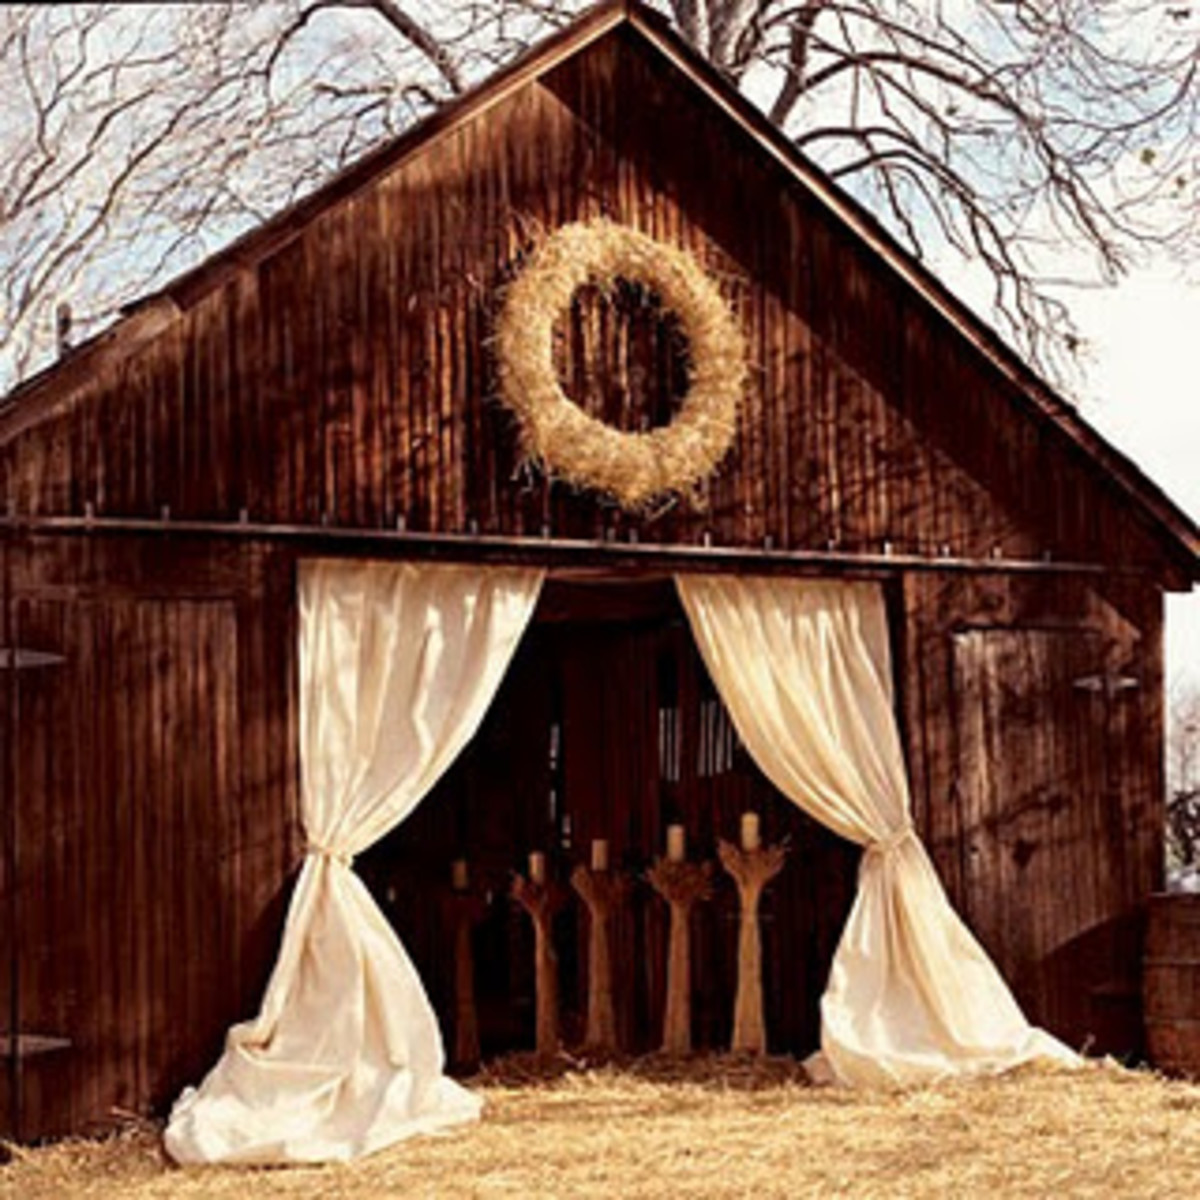 rustic-barn-wedding-ideas-for-the-bride-on-a-budget